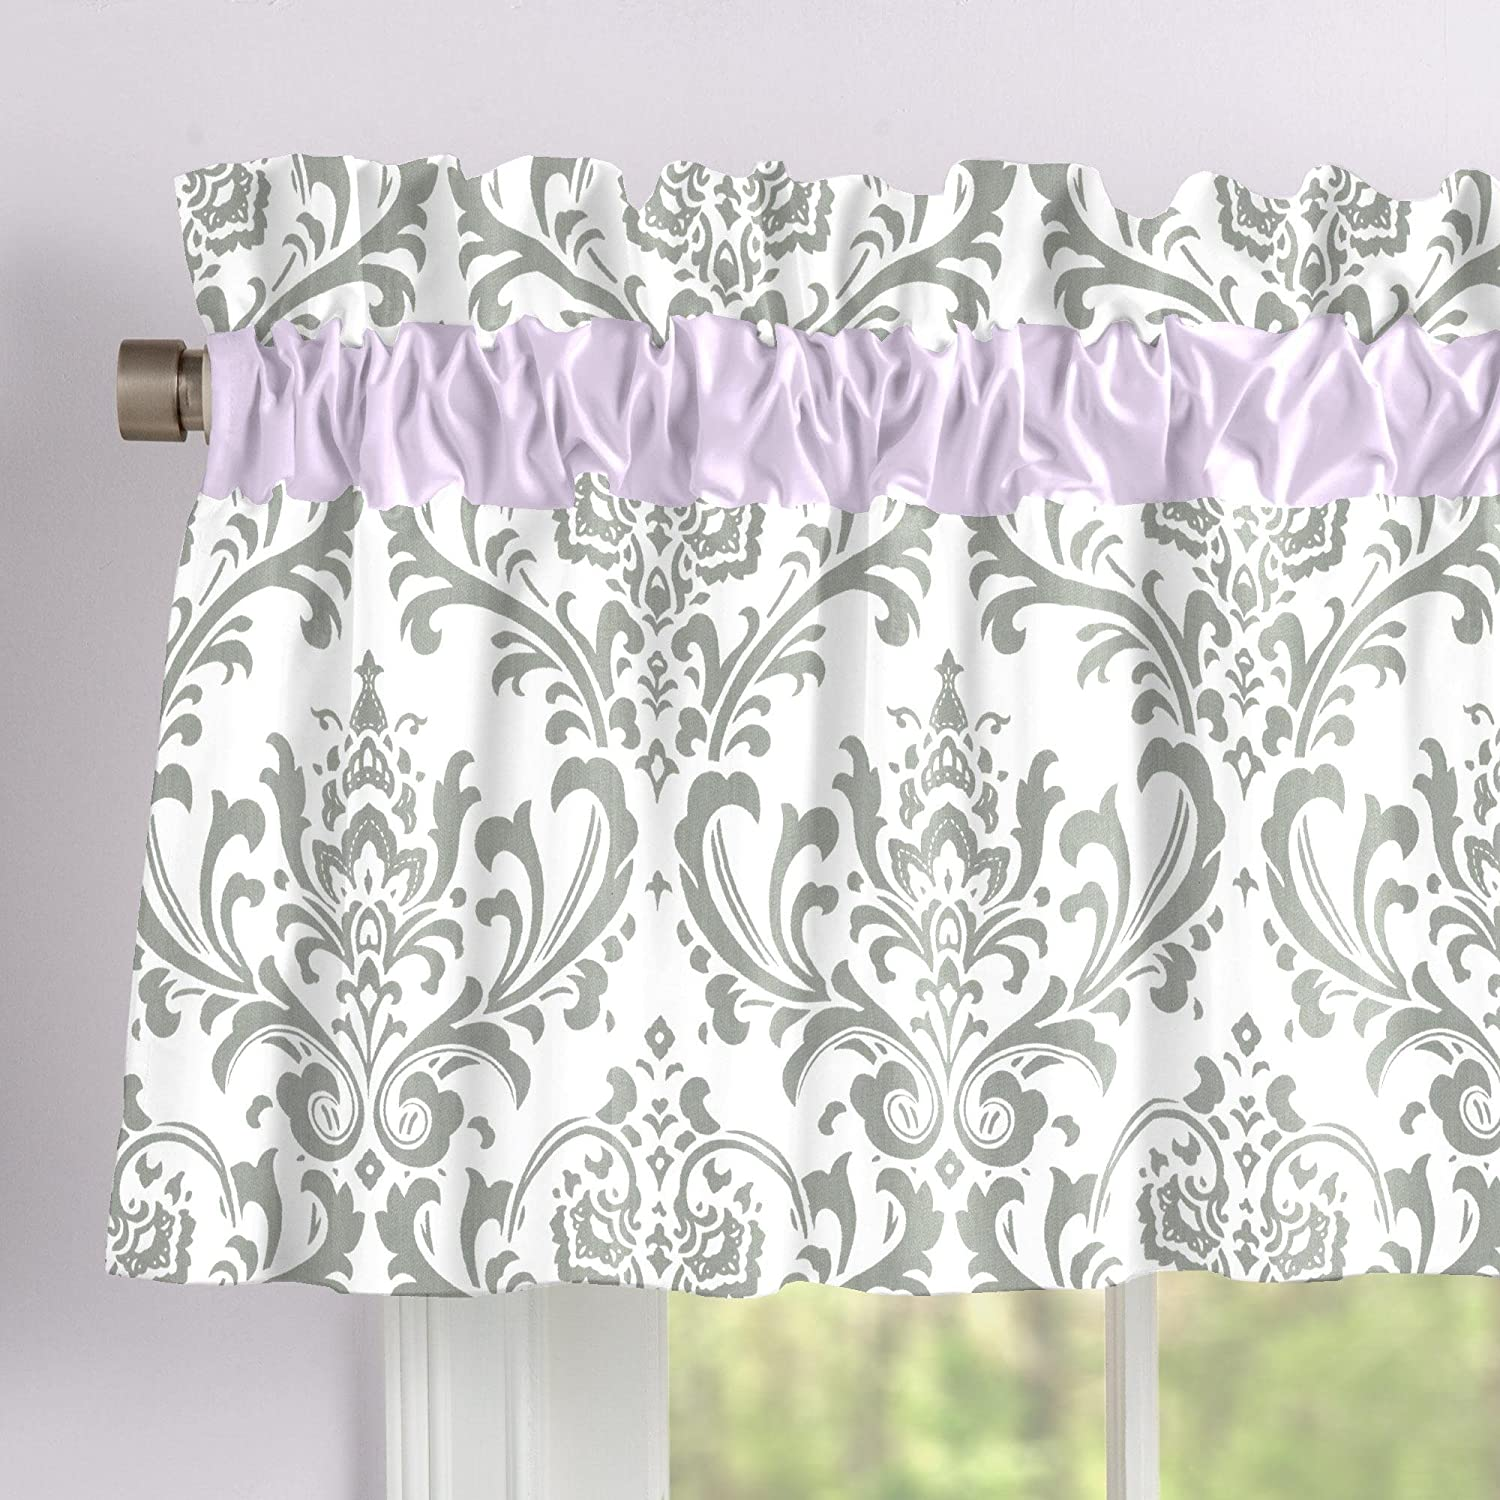 Carousel Designs Lilac and Gray Traditions Damask Window Valance Rod Pocket